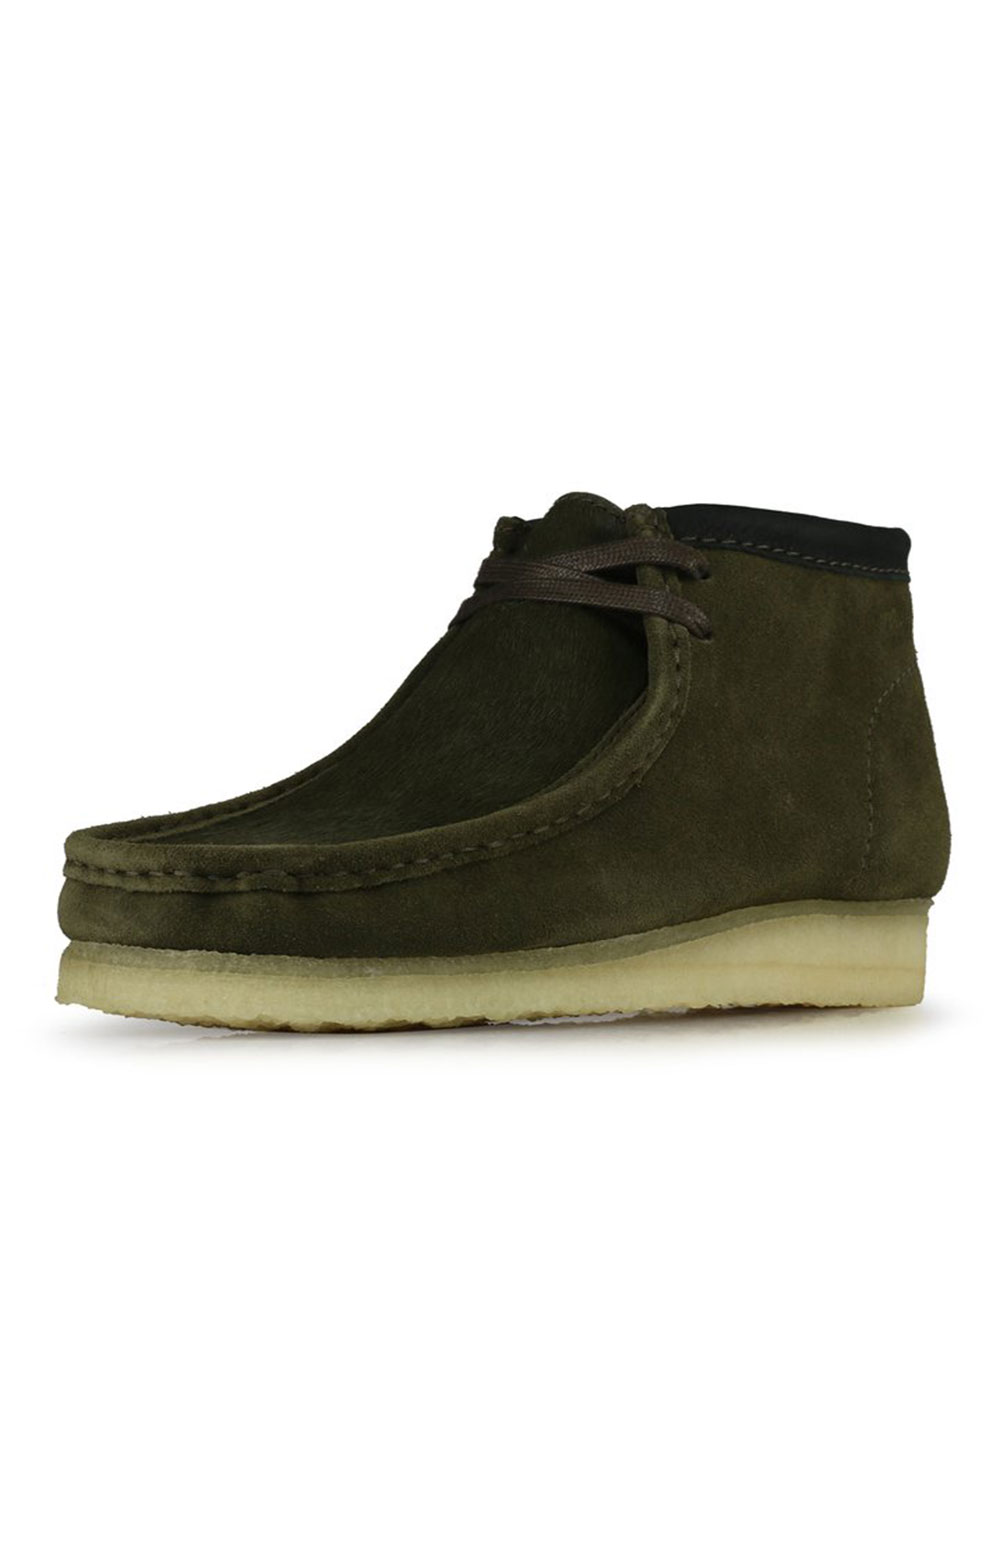 (26154740) Wallabee Boots - Olive Interest  6